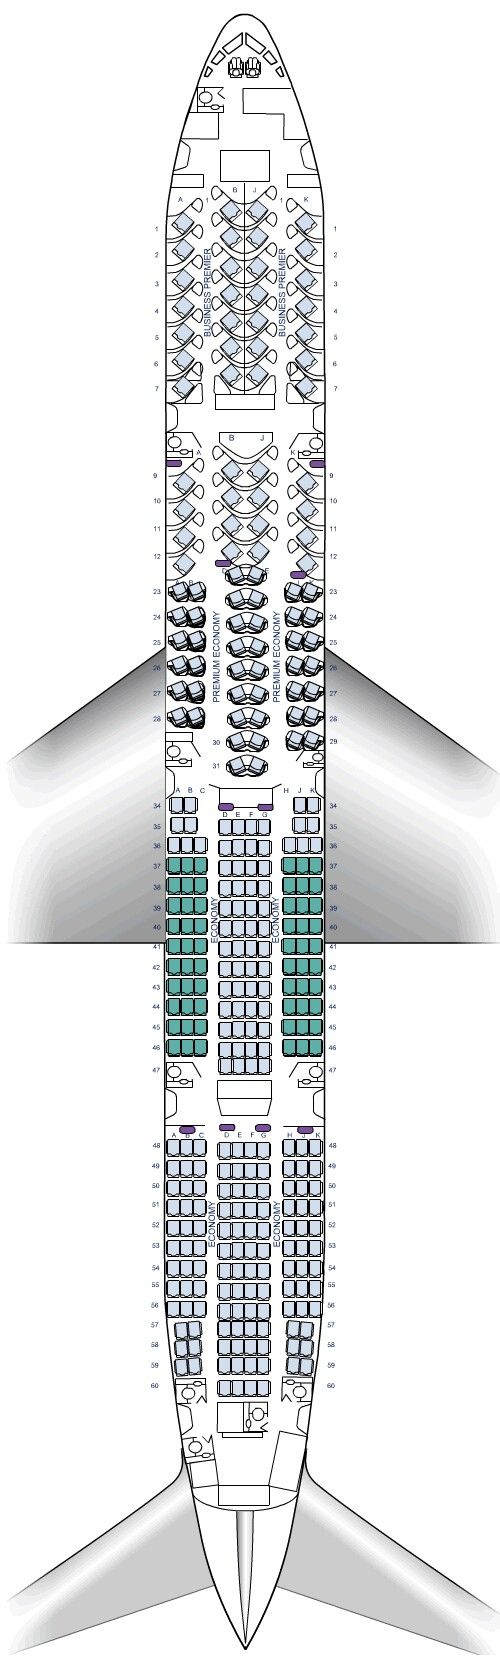 how to find old seat number air nz